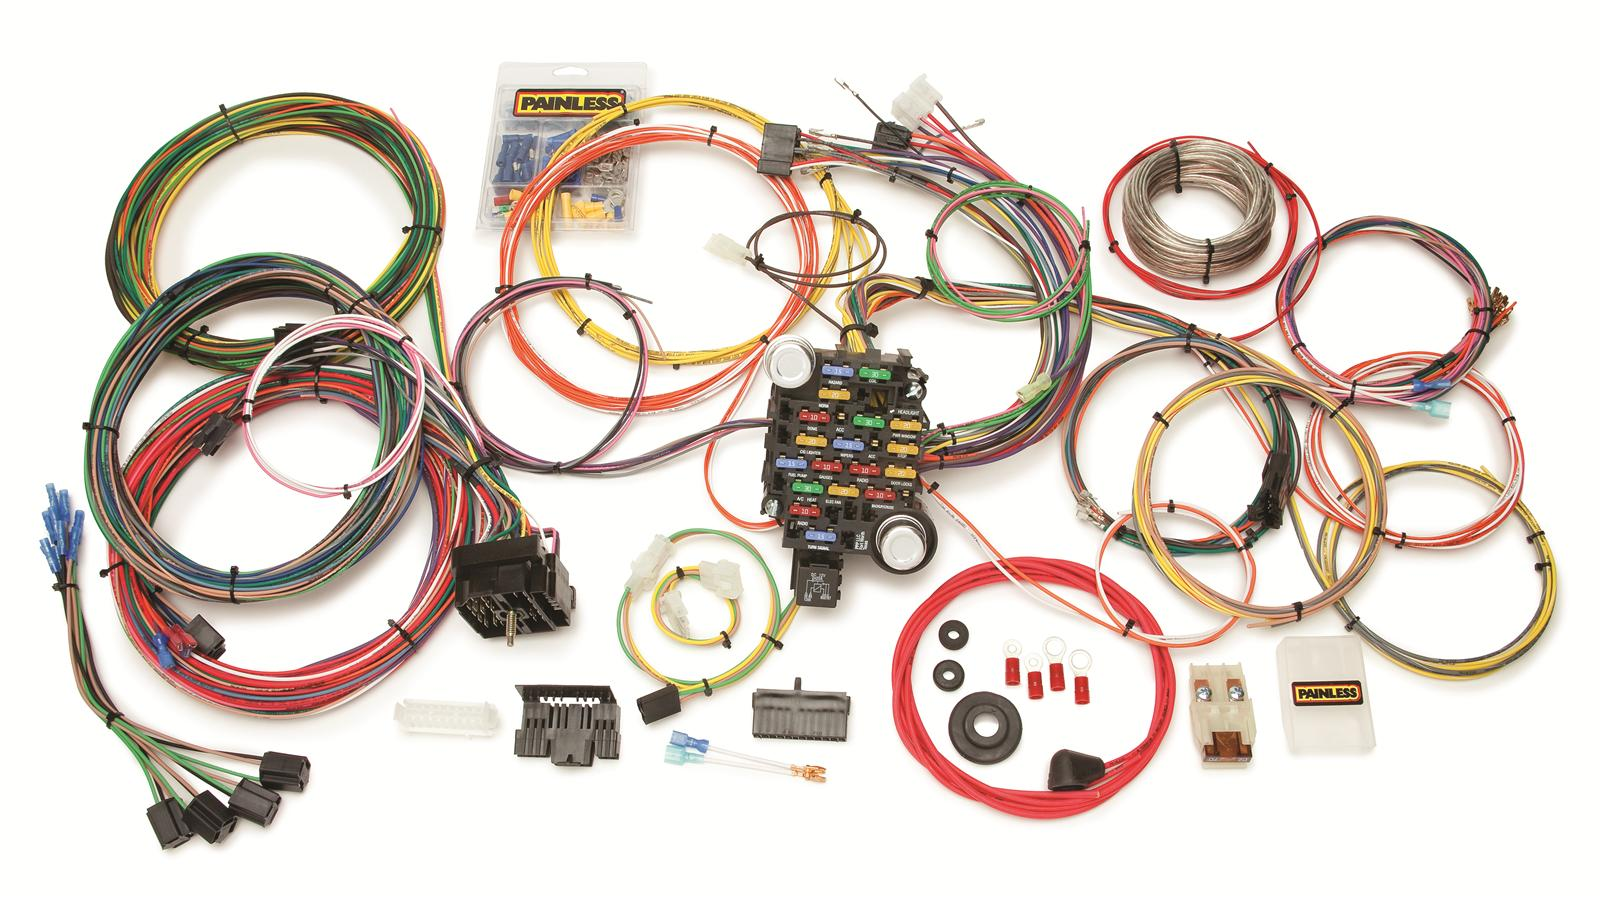 Painless Performance Gmc Chevy Truck Harnesses 10205 Free Shipping 1973 Distributor Wiring Diagram On Orders Over 99 At Summit Racing